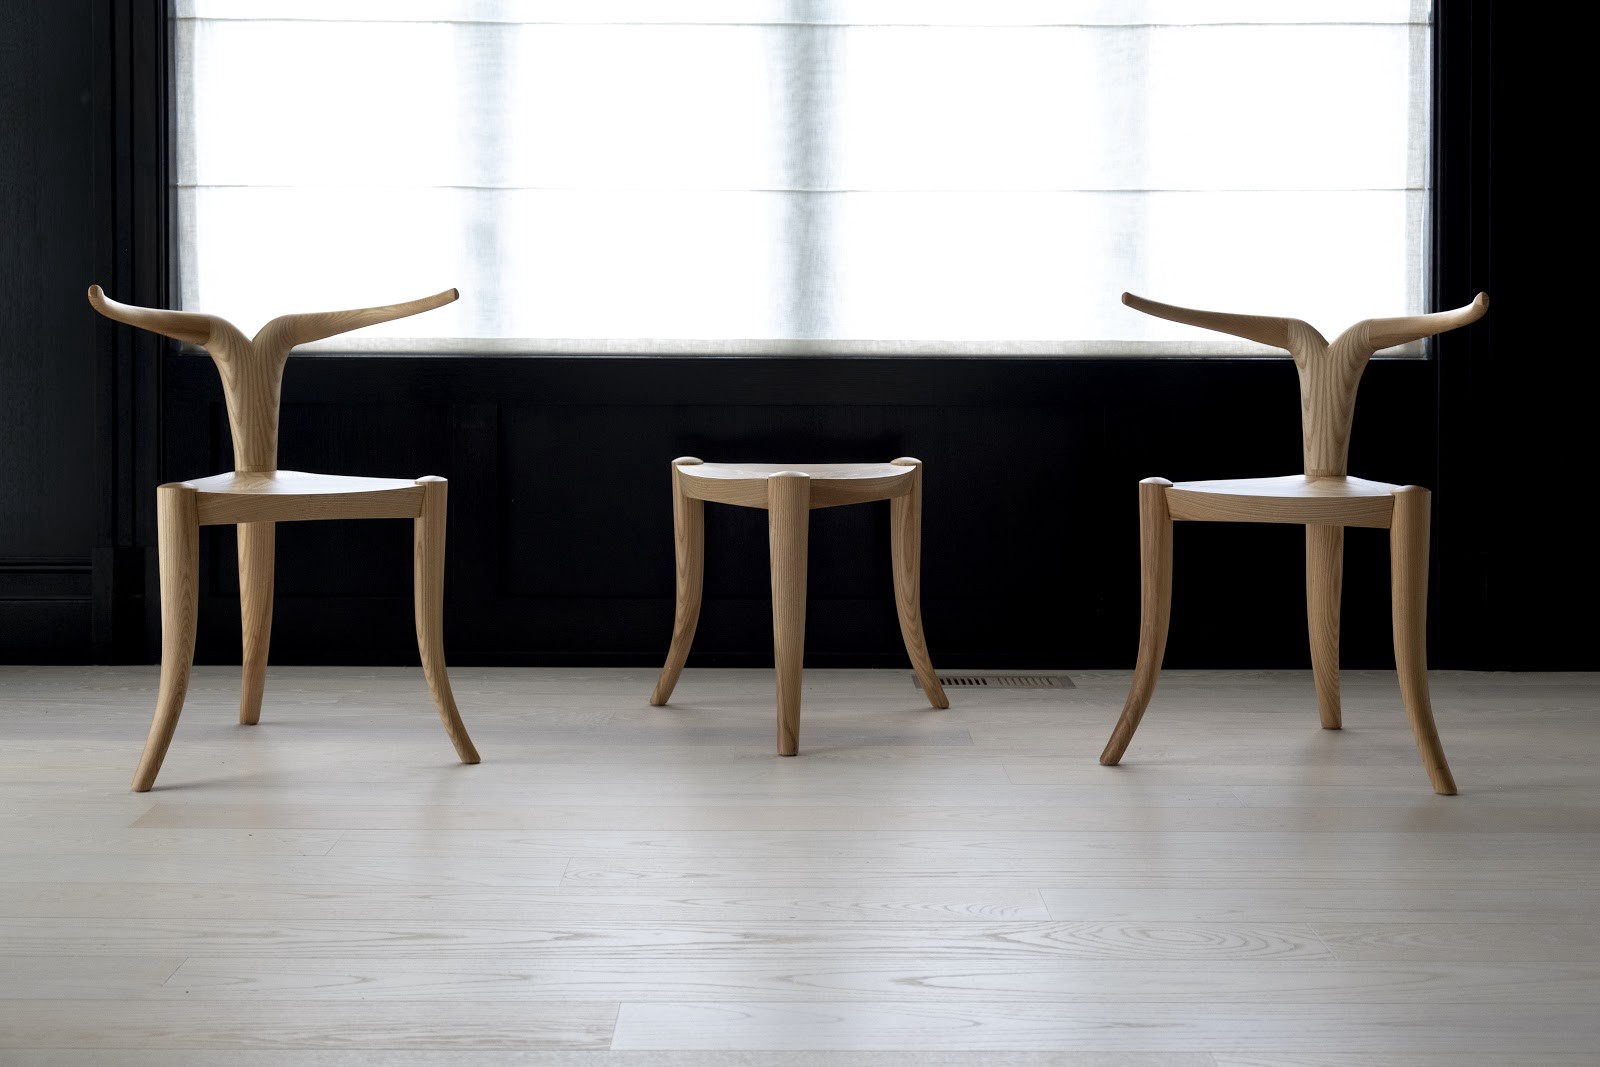 Two 3-legged chairs with antler-like backs and a 3-legged stool of the same hieght with no back. All in natural white wood.